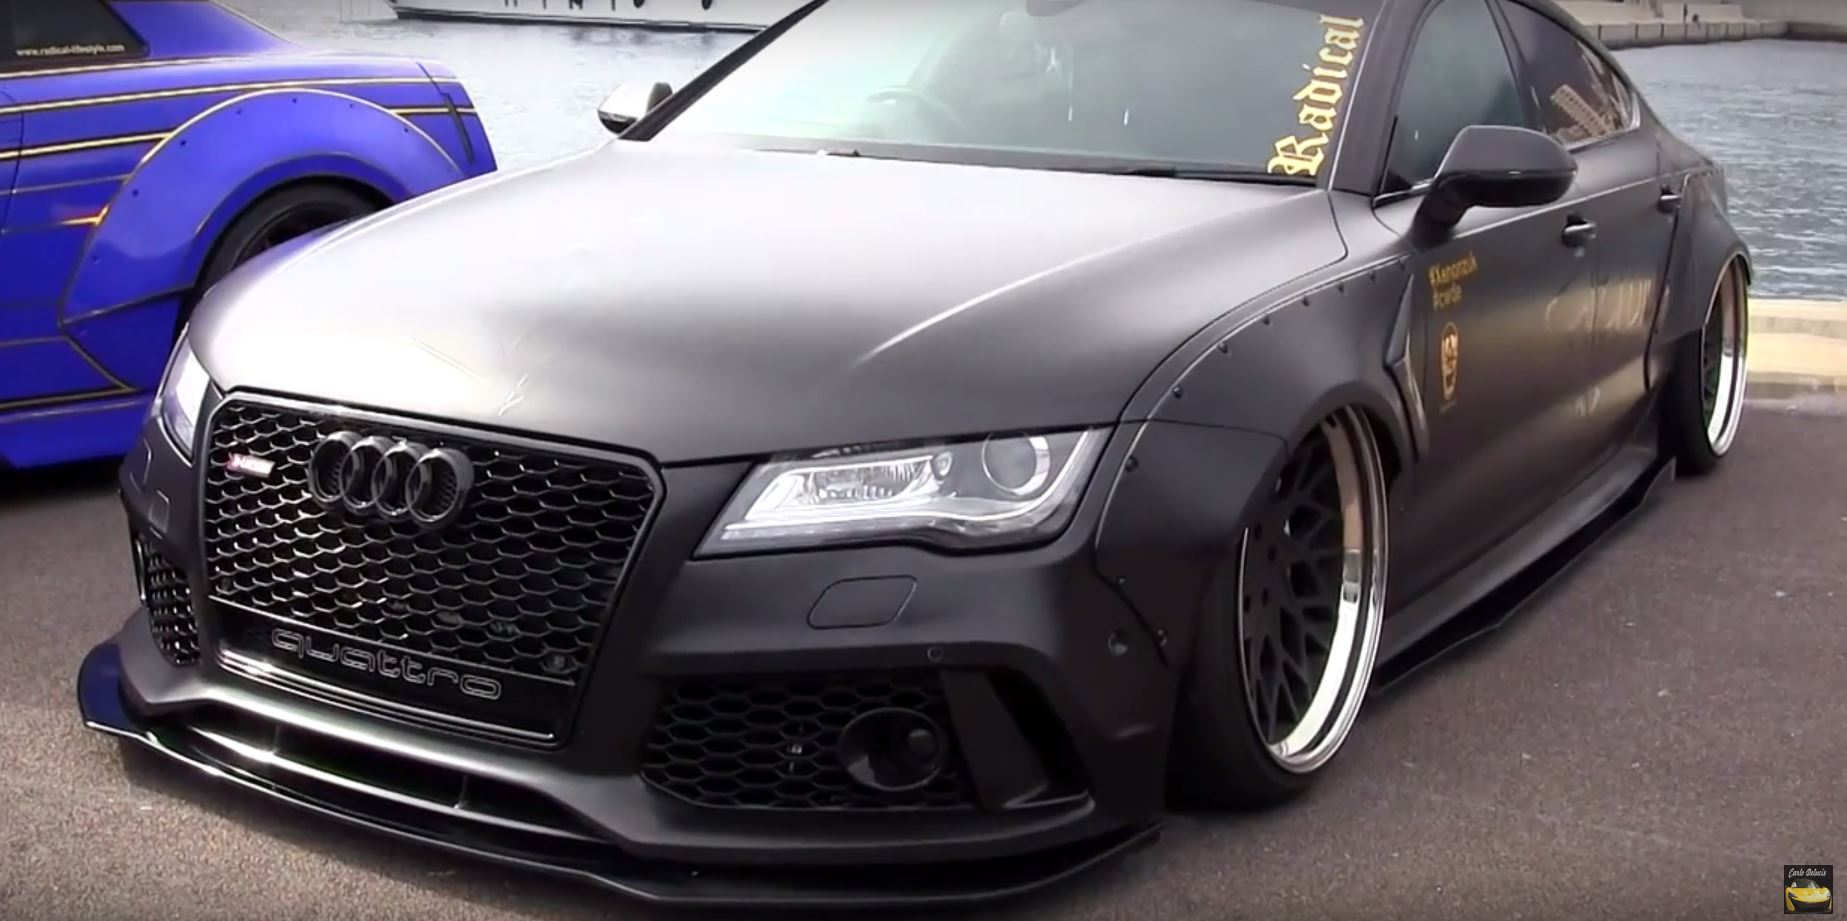 Audi Rs7 Tdi Has Rocket Bunny Kit Air Suspension And Awesome